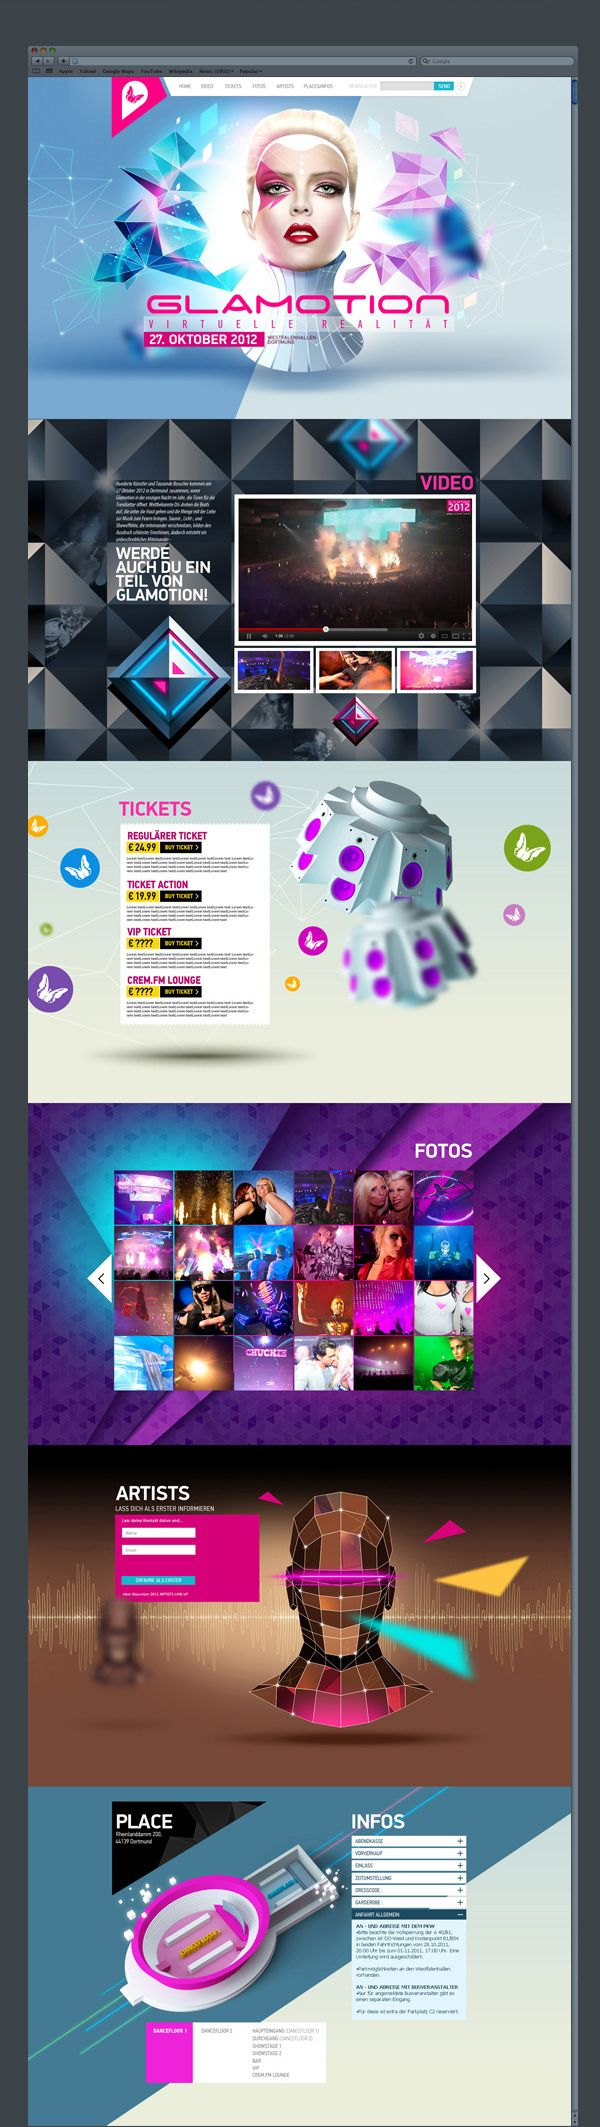 Glamotion 2012 by Alexandre Efimov, via Behance